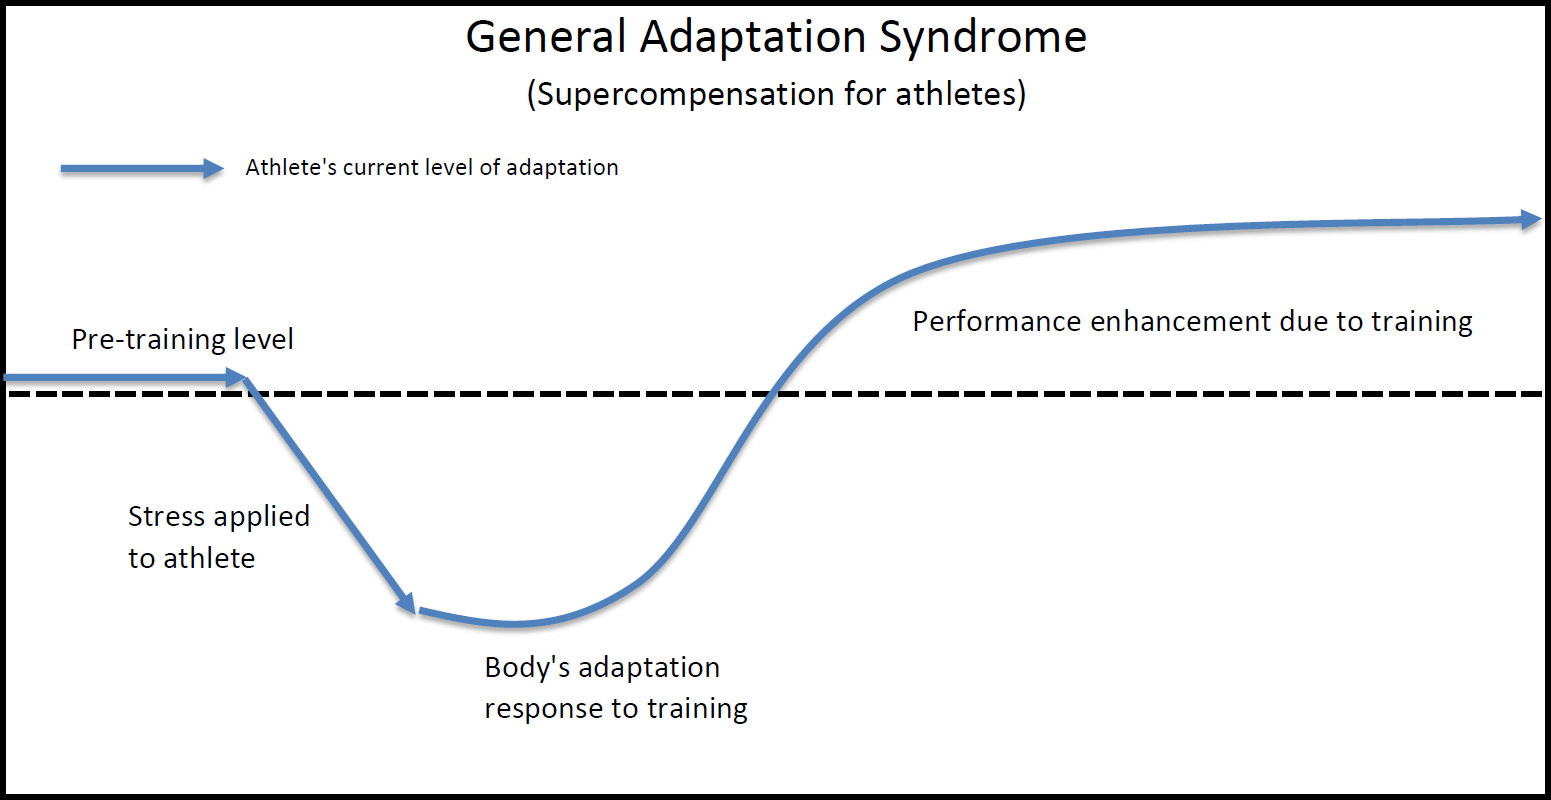 Adaptation_Response_with_Appropriate_Stress_in_Training_(Desired_Adaptation).png